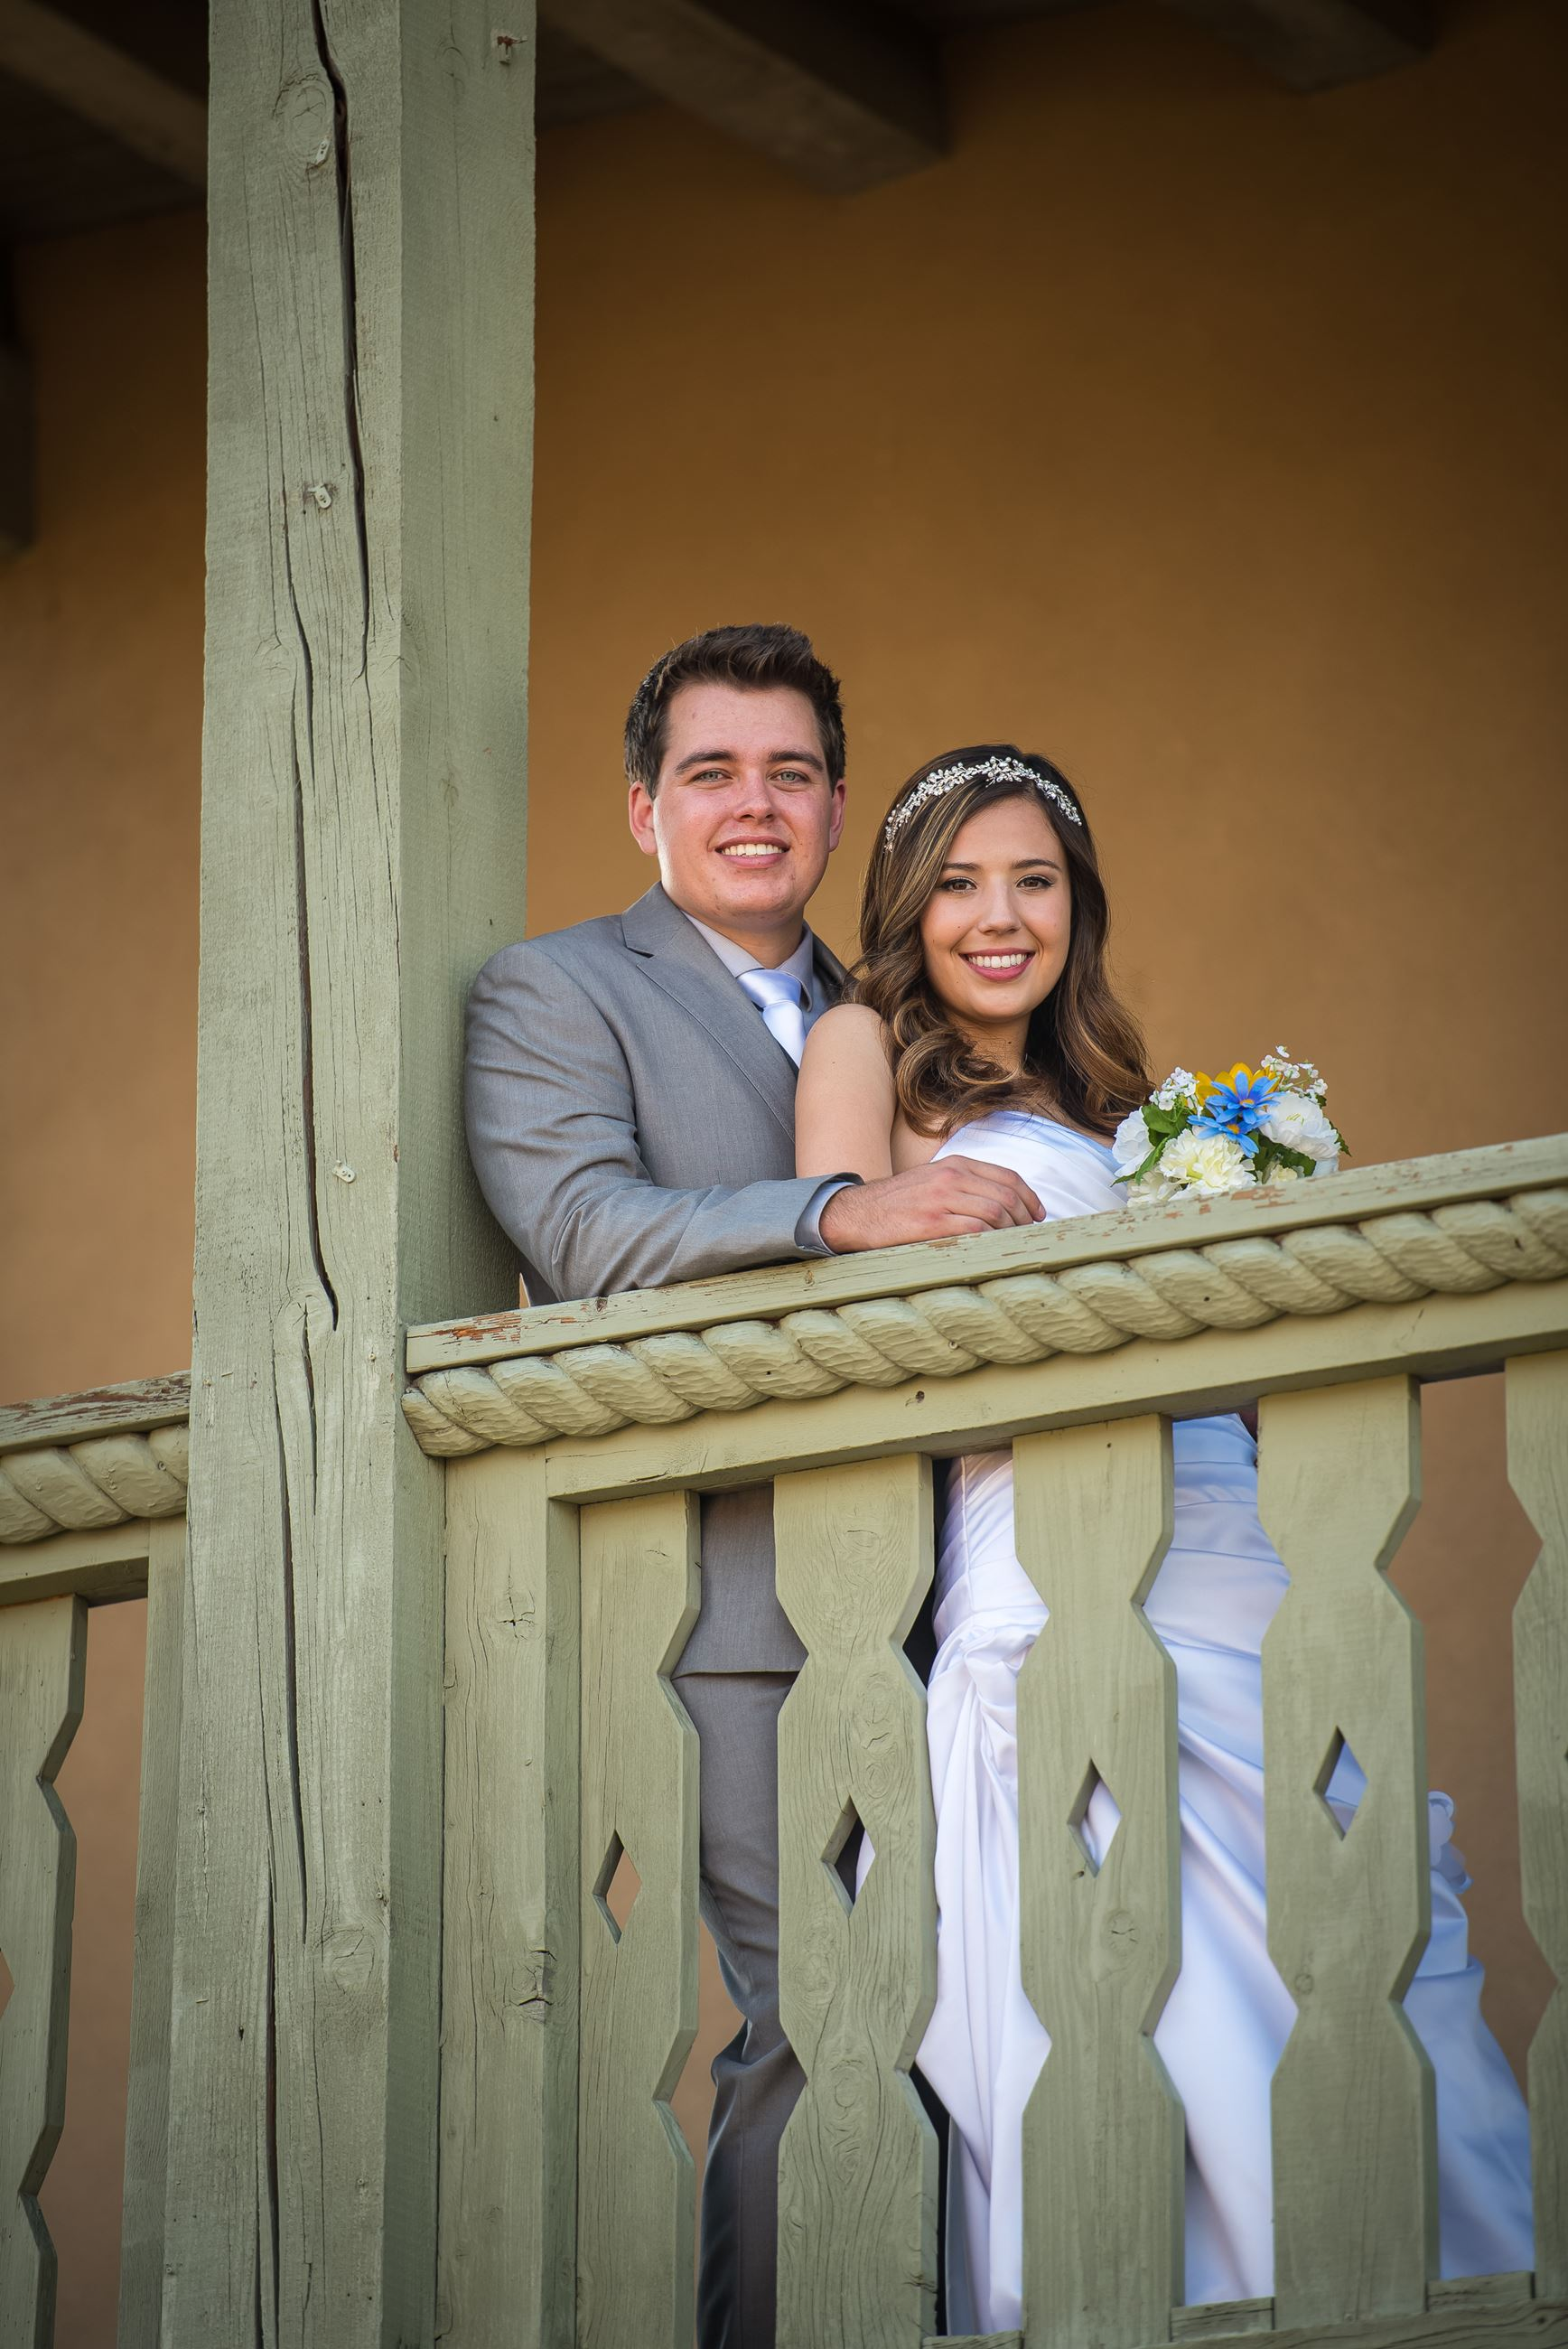 Wedding at Plaza Convento - Bride and Groom